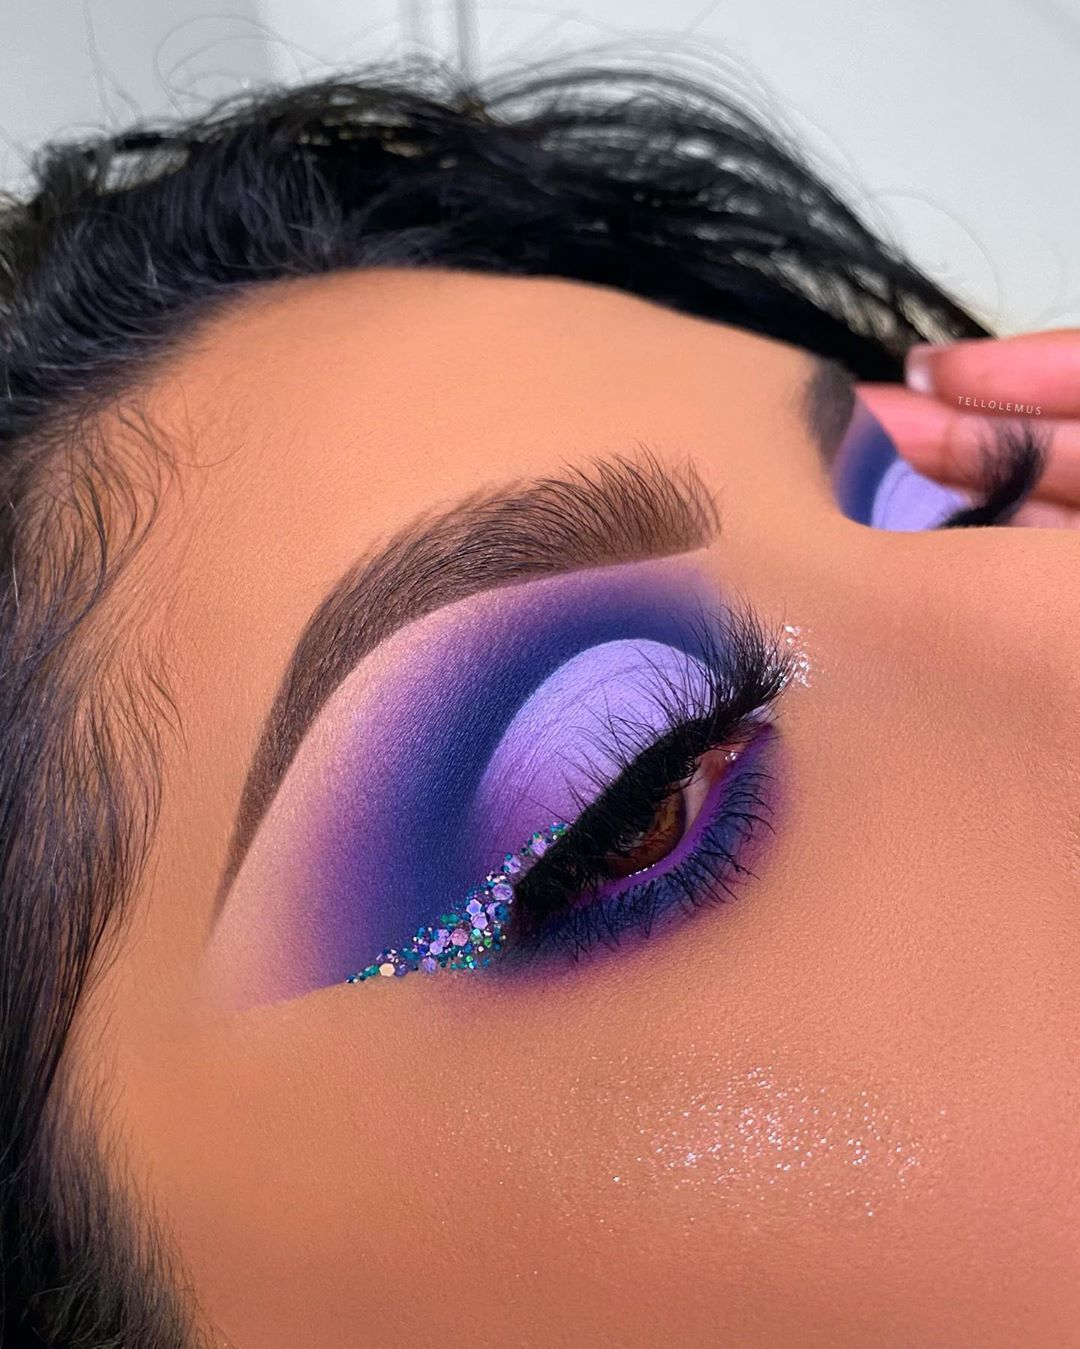 """Certified Makeup Artist on Instagram: """"☔️PURPLE RAIN☔️ - 🇺🇸: I'm obsesseddtttt😢 So so happy with how this turned out; exactly what I saw in my head🤩 - 🇲🇽: Estoy obsesionada con…"""""""